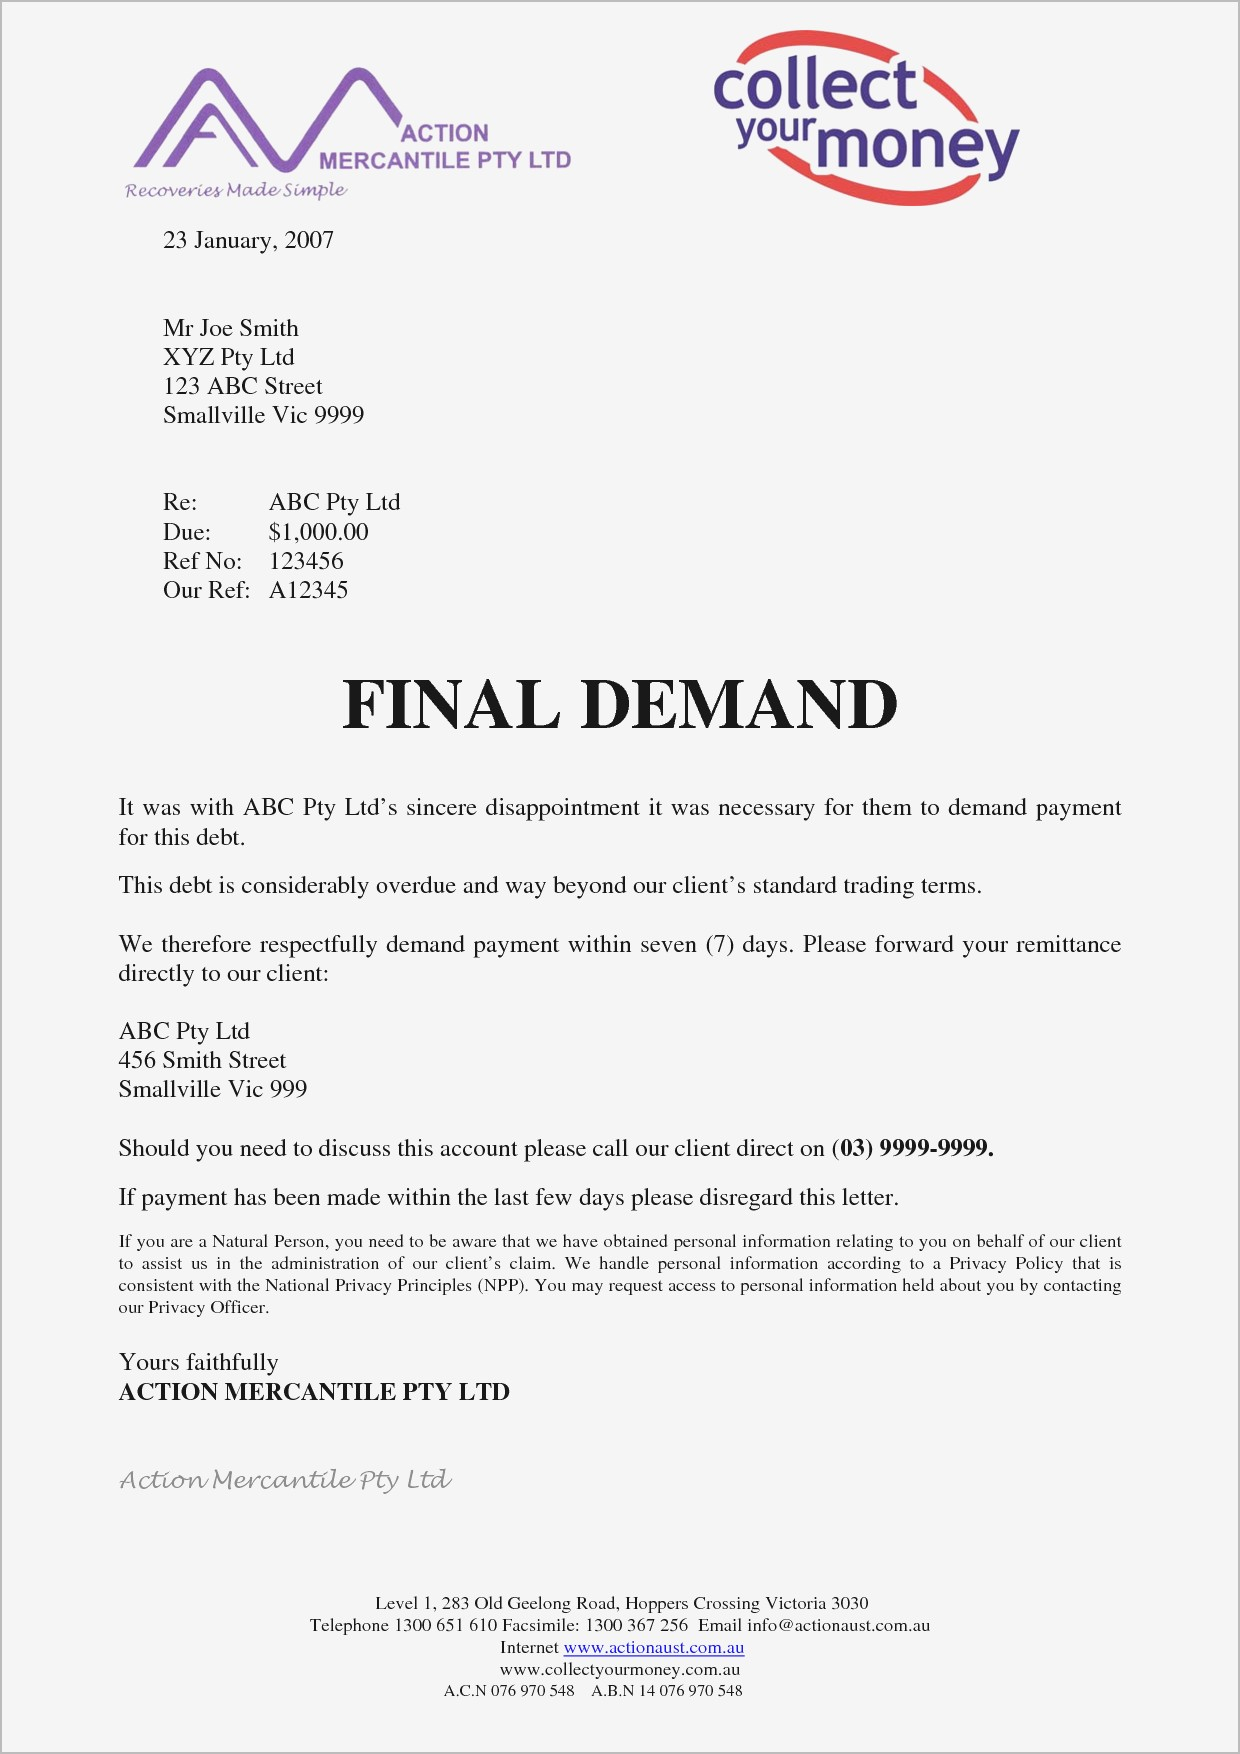 Demand for Payment Letter Template - Demand for Payment Letter Template Ideas